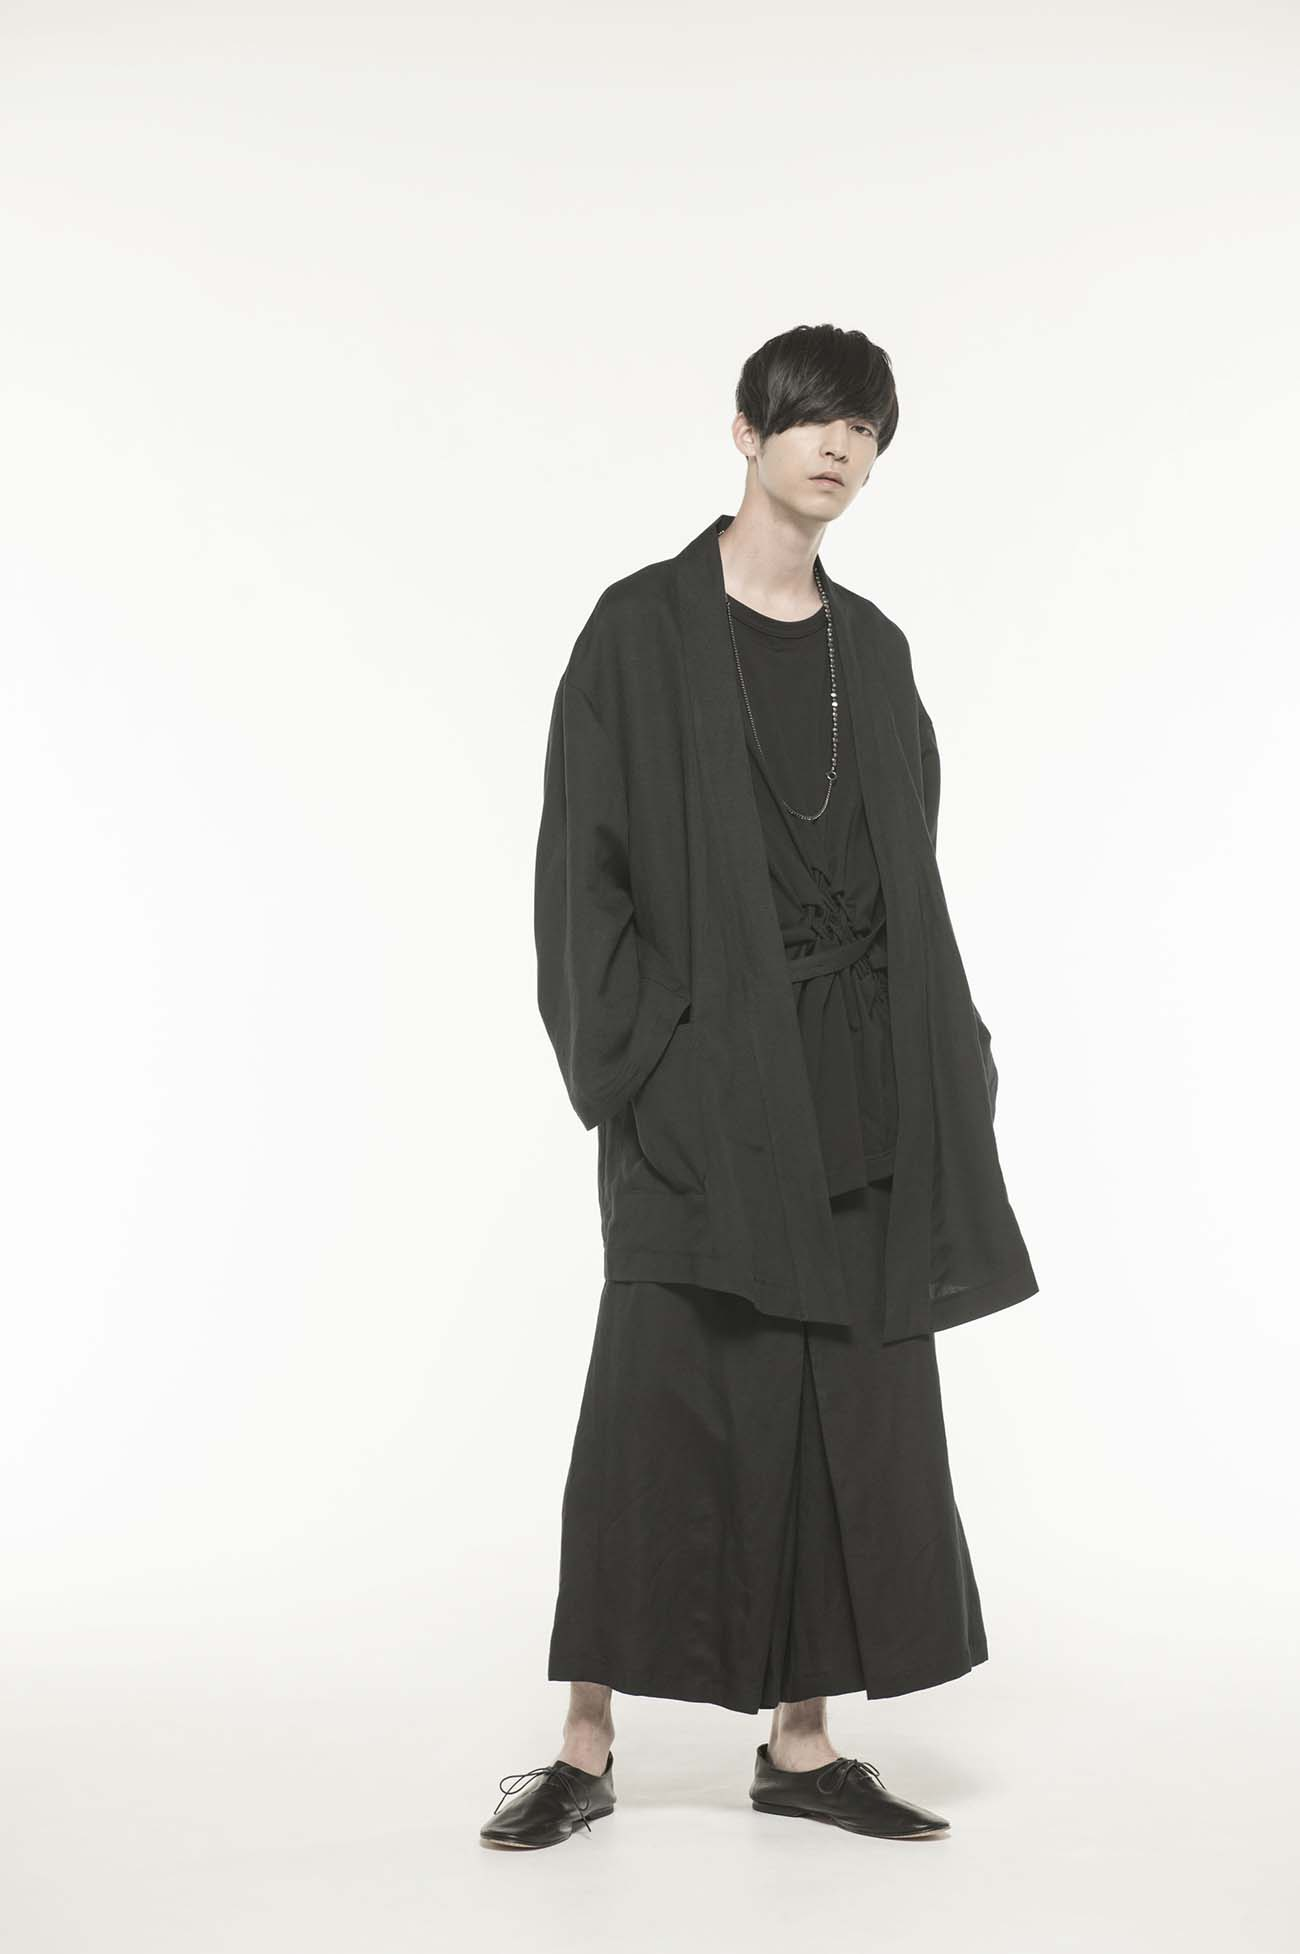 Rayon/Linen Bio Washer Hakama Pants